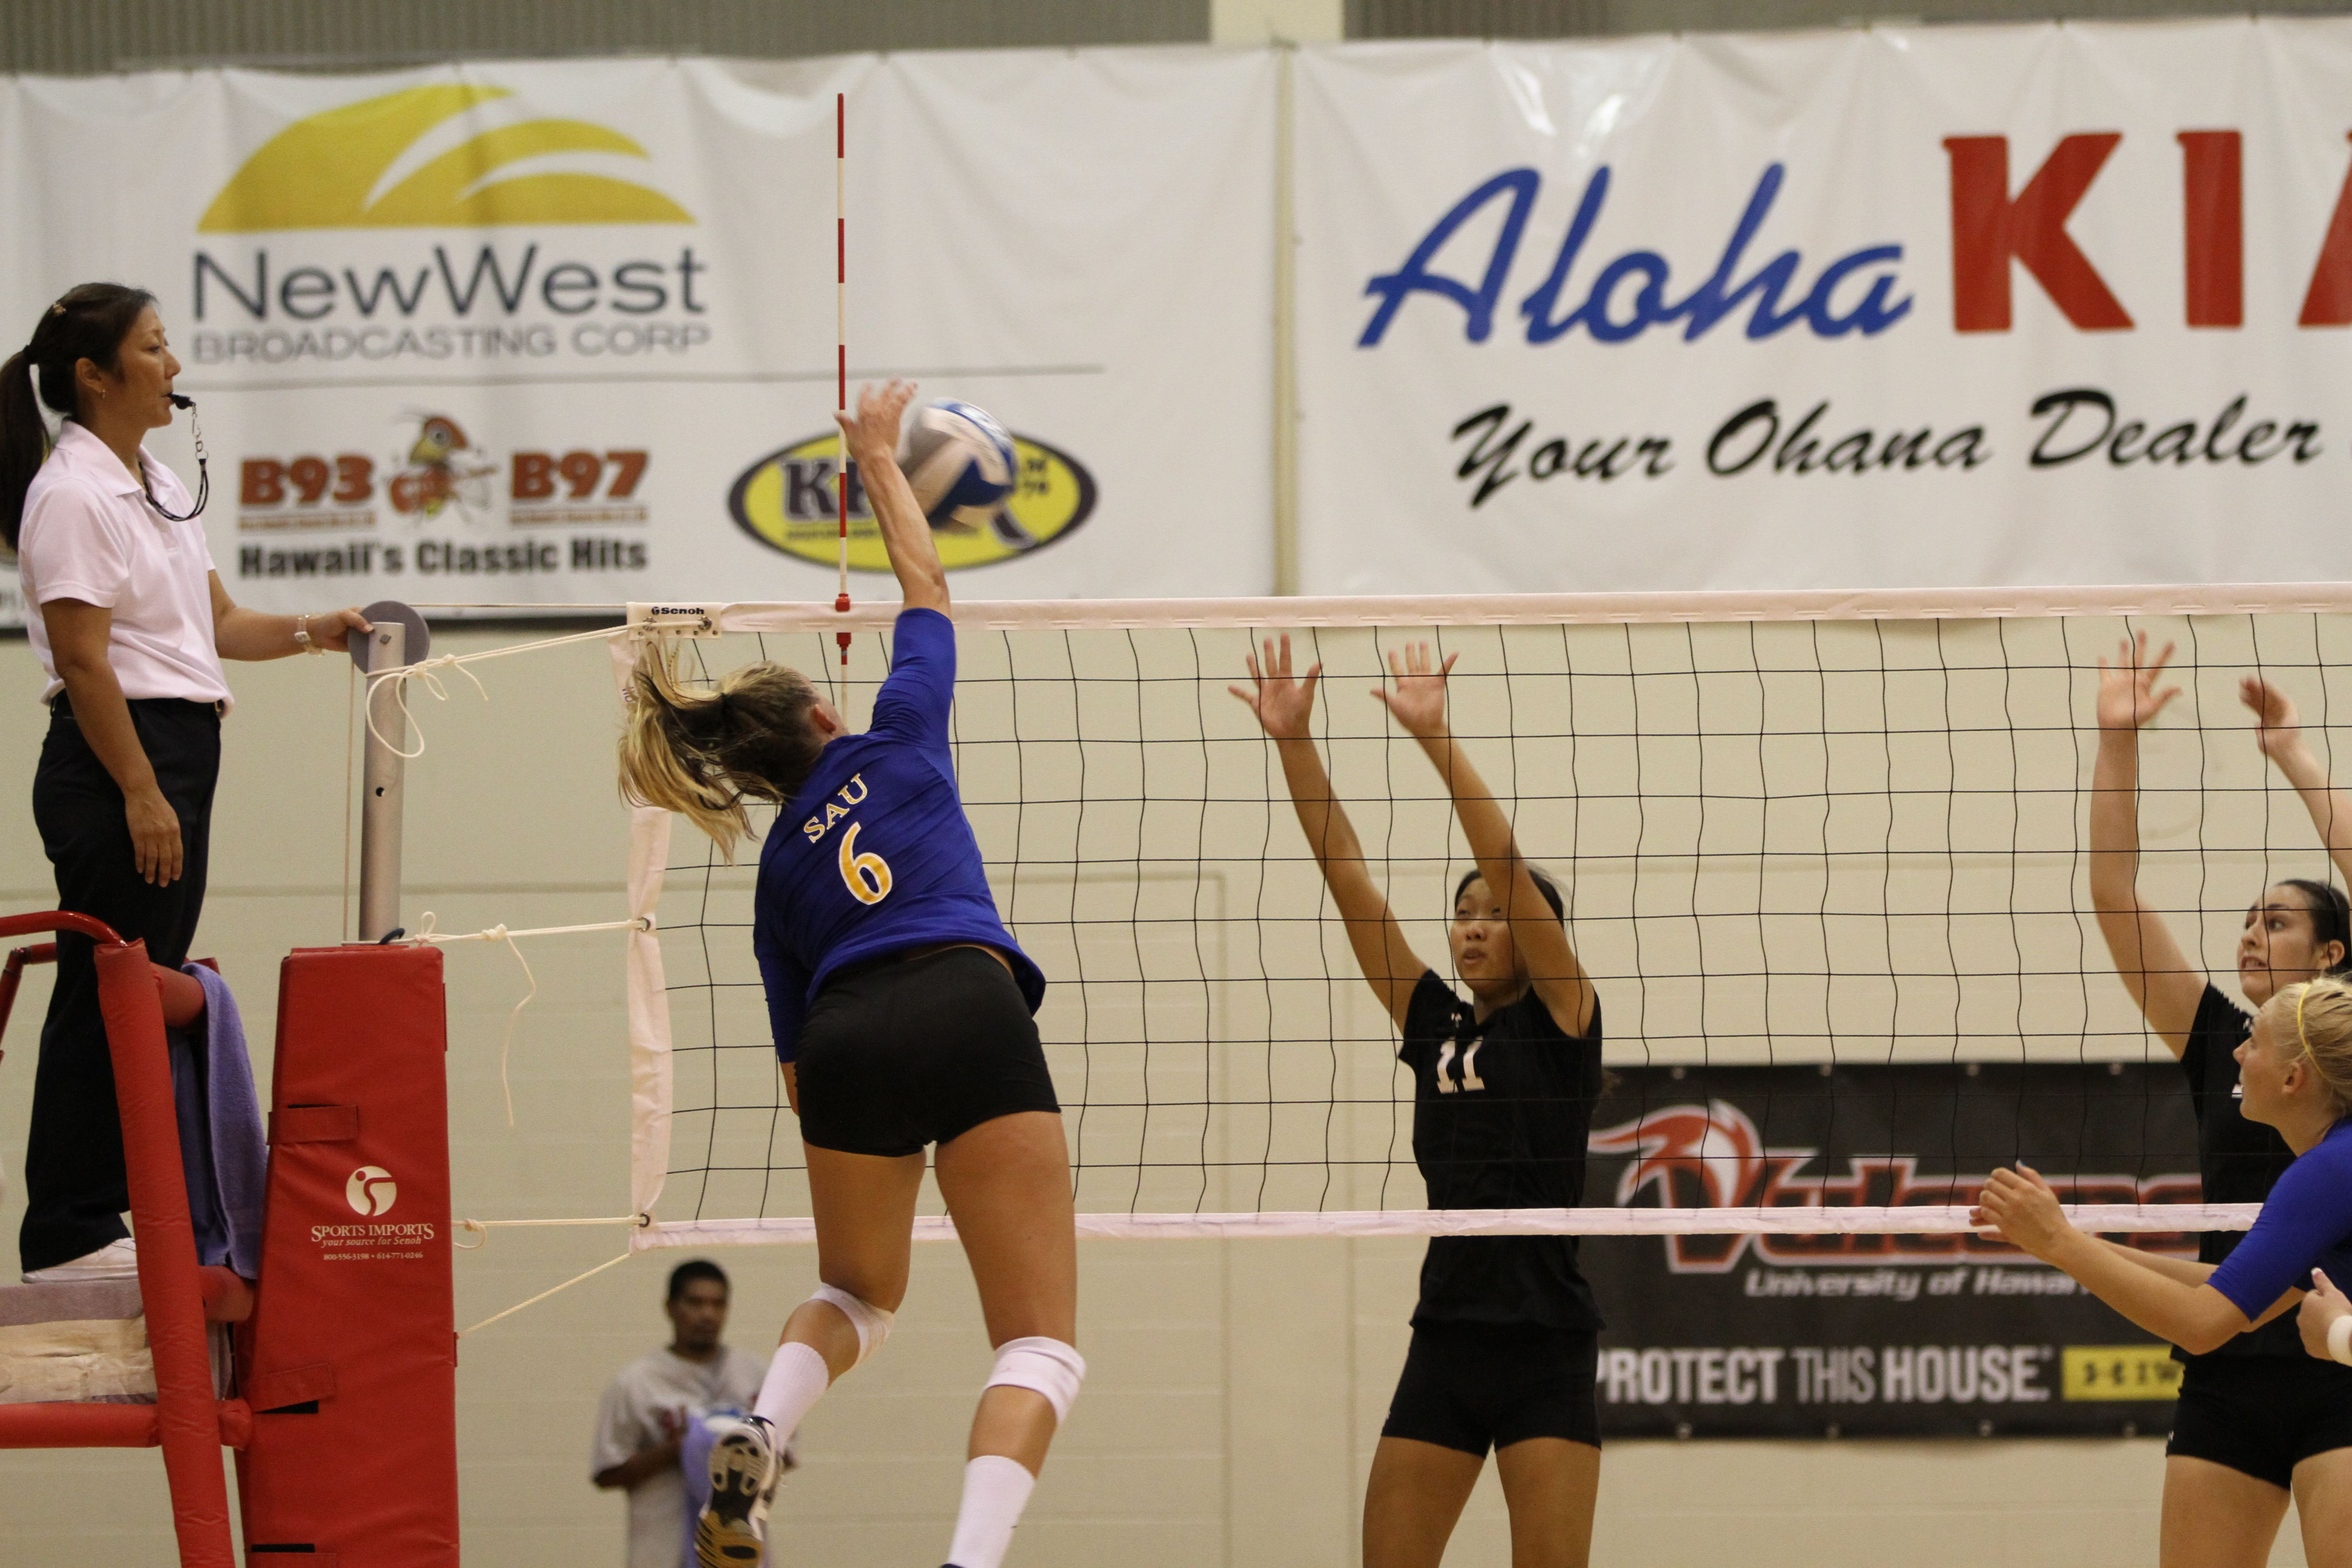 Courtney Gessing Getting A Kill Down The Line Against Hawaii Hilo Volleyball Pictures Broadcast Basketball Court